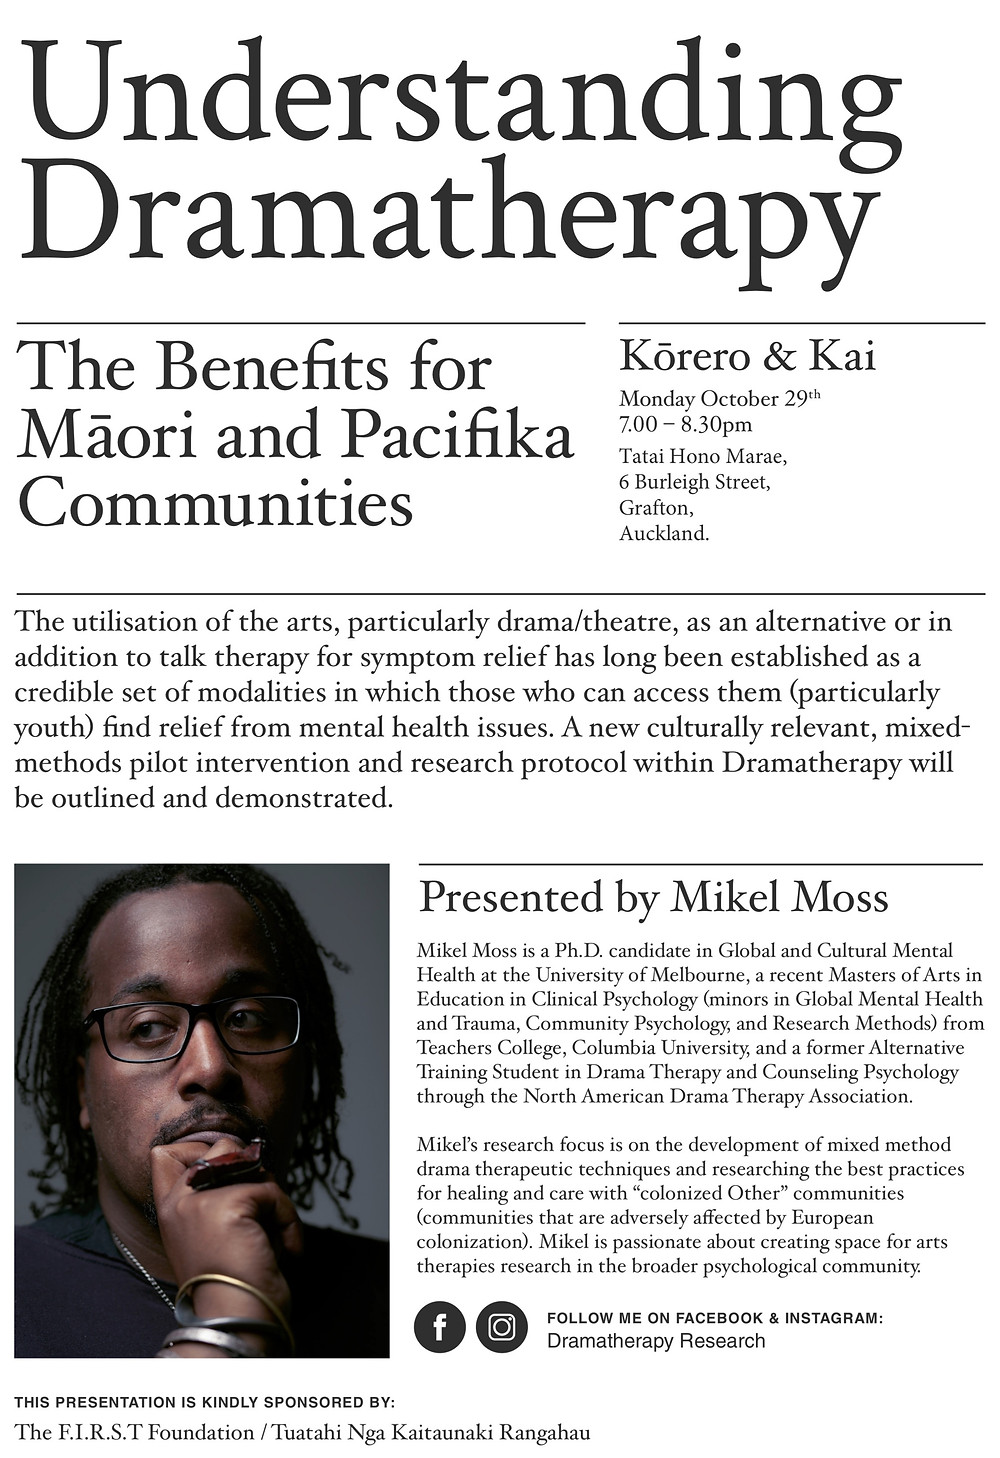 New Zealand, Māori, Pacifika, dramatherapy